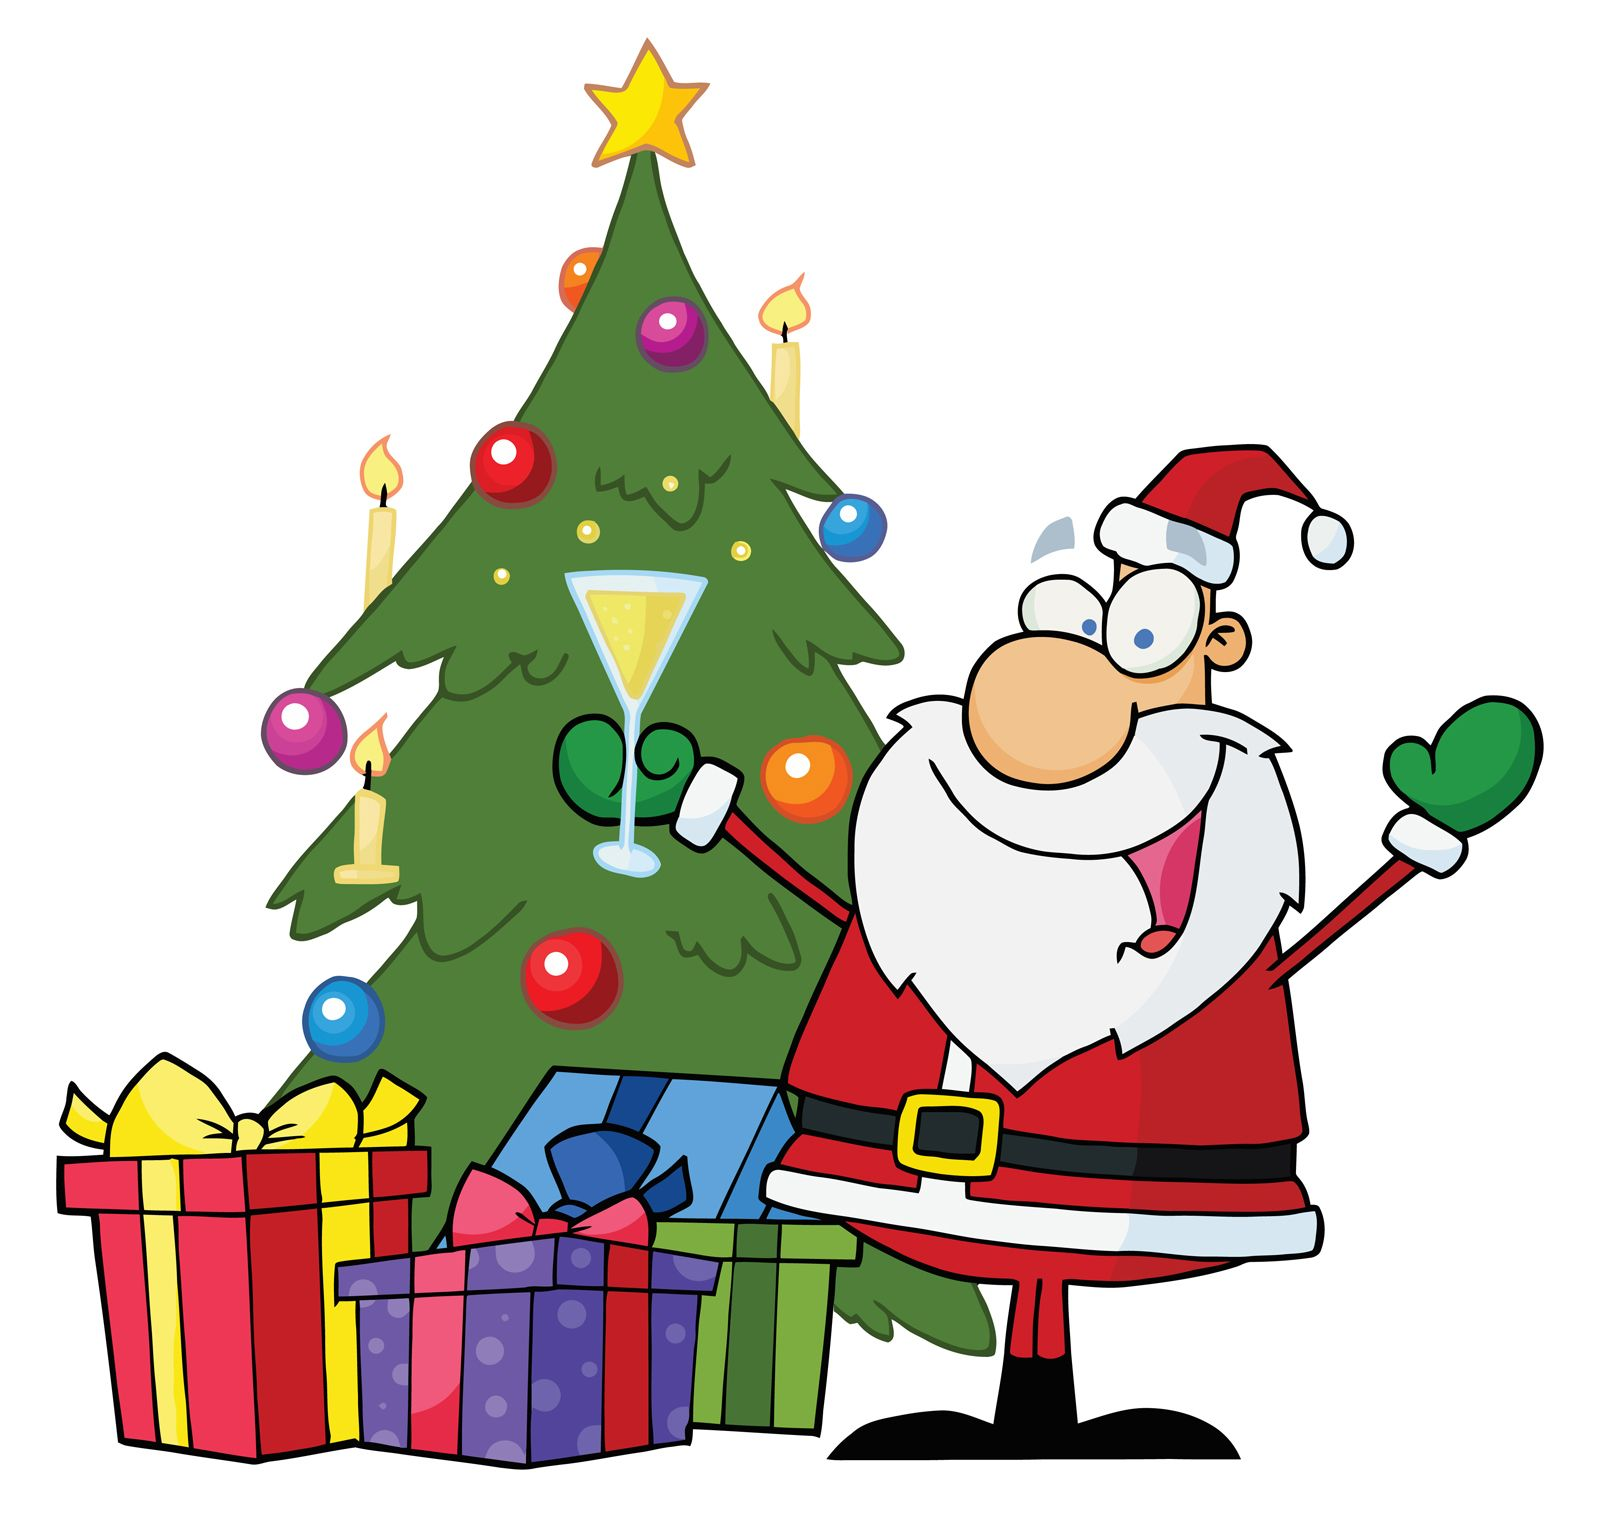 merry christmas and happy new year from the inland empire chapter rh pinterest co uk Merry Christmas Graphics merry christmas and happy new year 2014 clipart